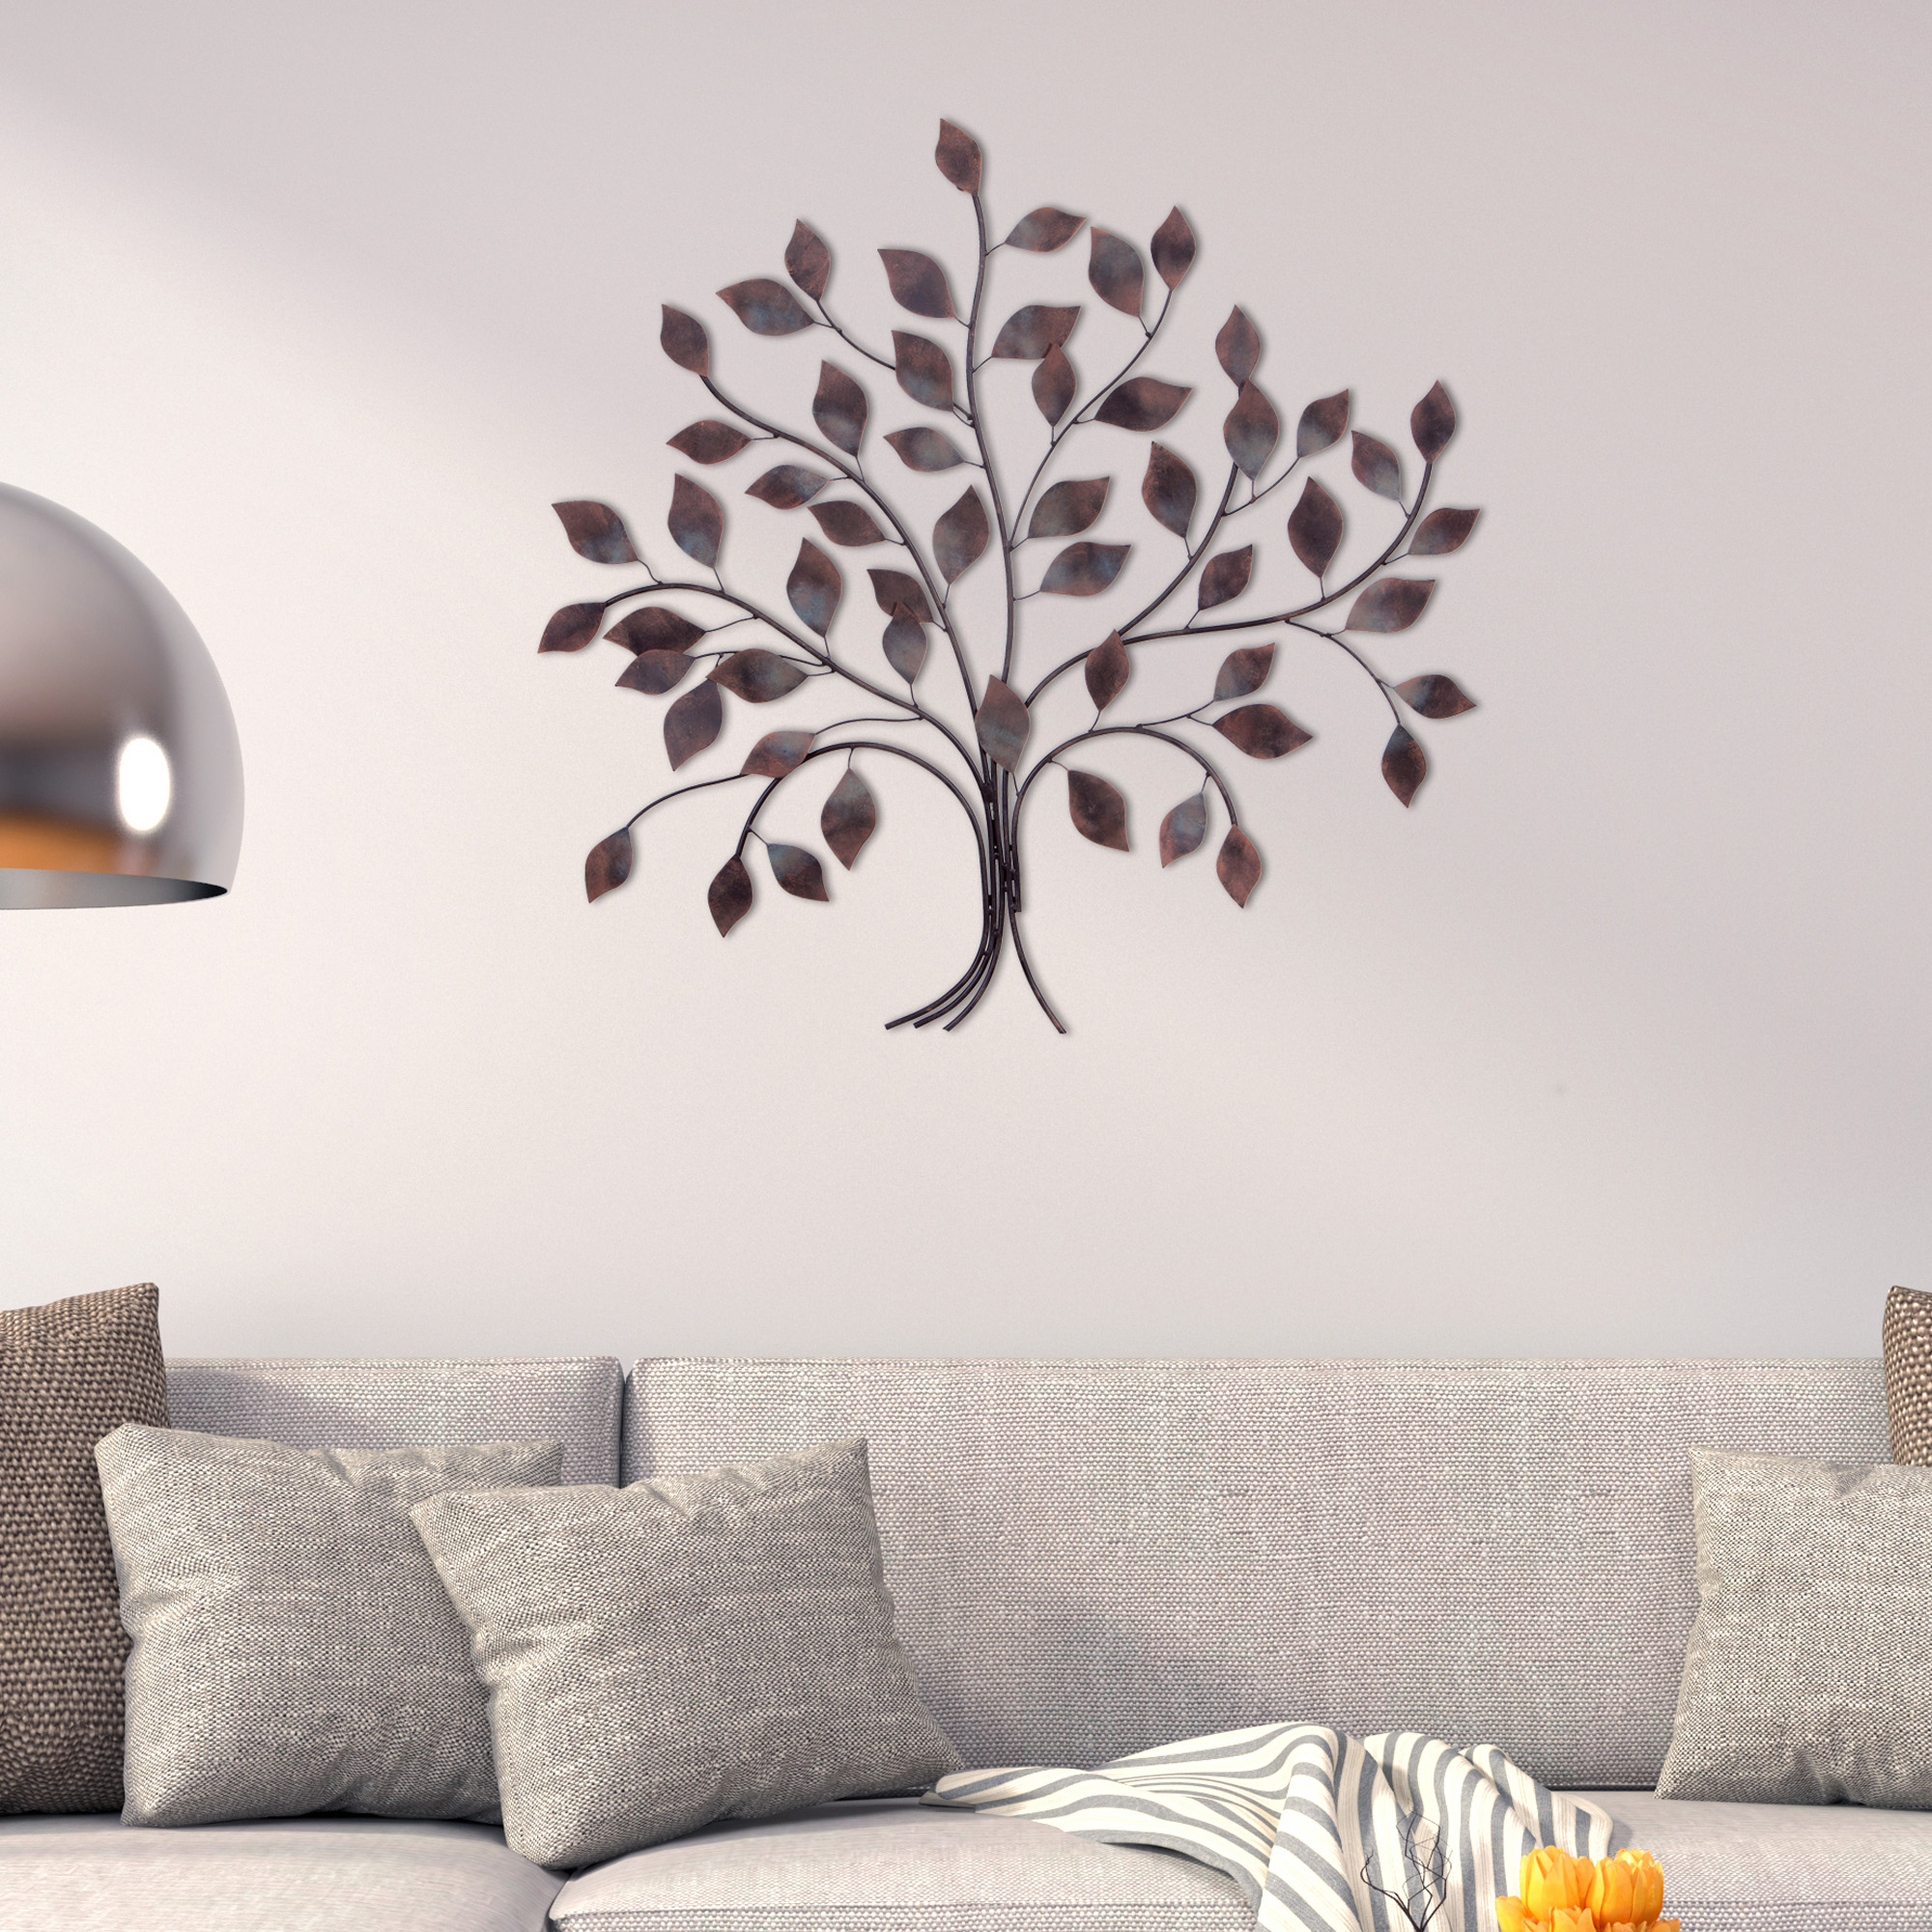 Patton Wall Decor Bronze Tree Branch Decorative Metal Wall Décor Regarding Oil Rubbed Metal Wall Decor (View 4 of 30)